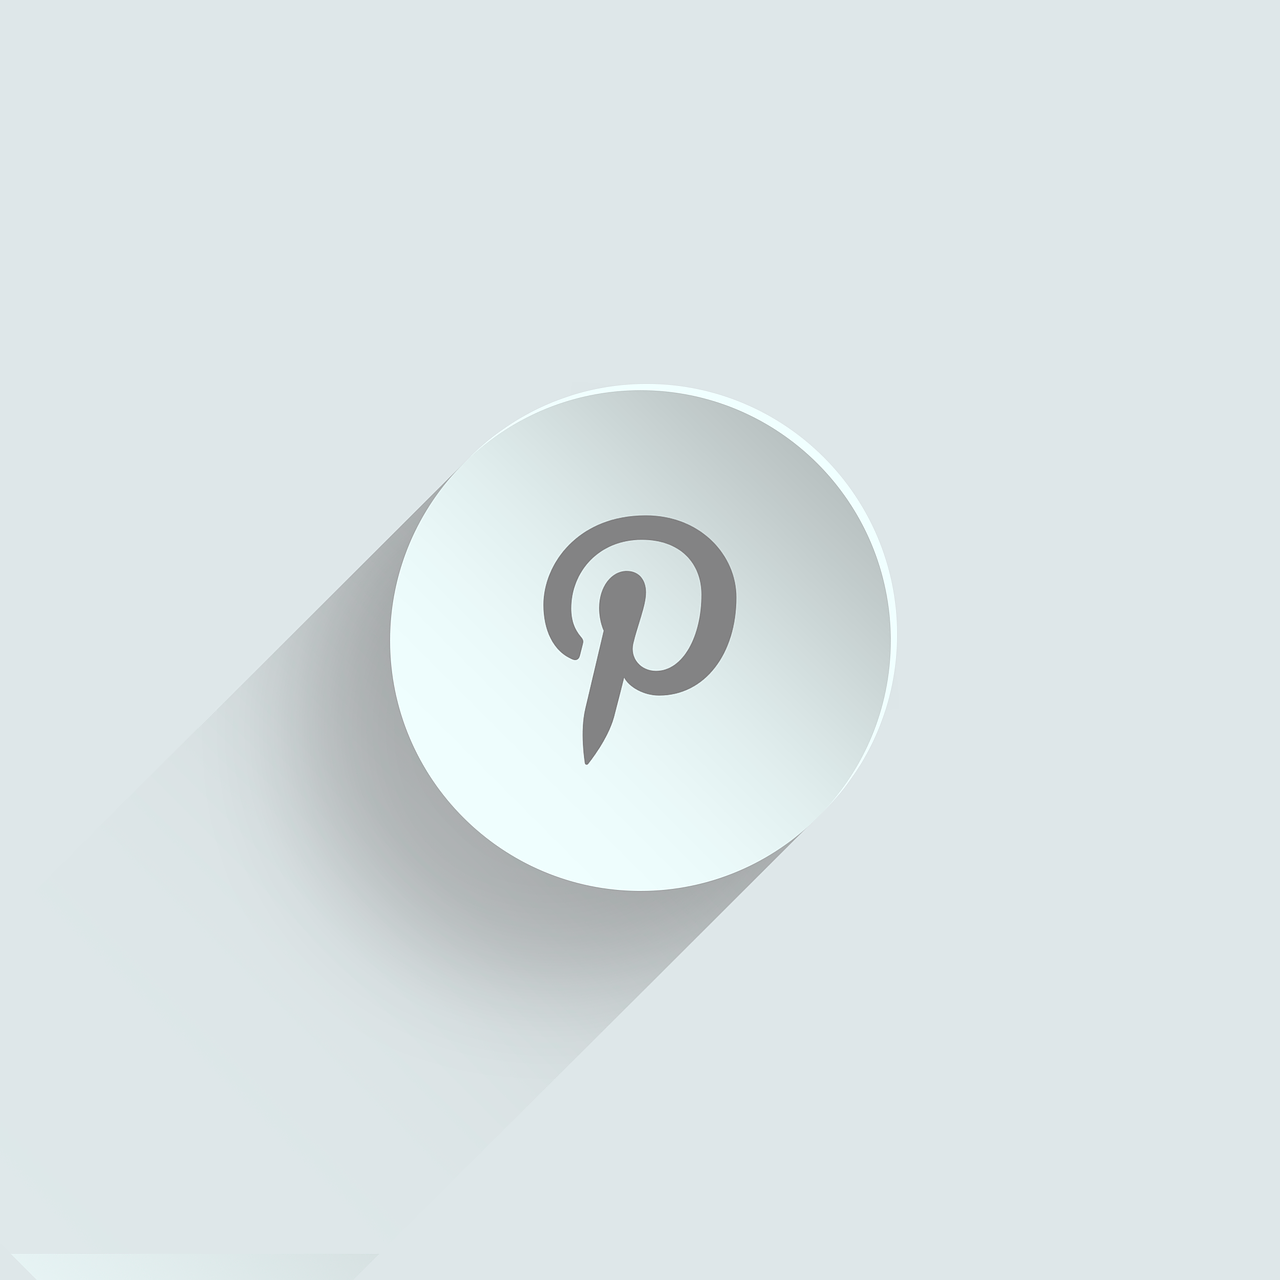 How to Make Money on Pinterest Effectively Step by Step For Beginners